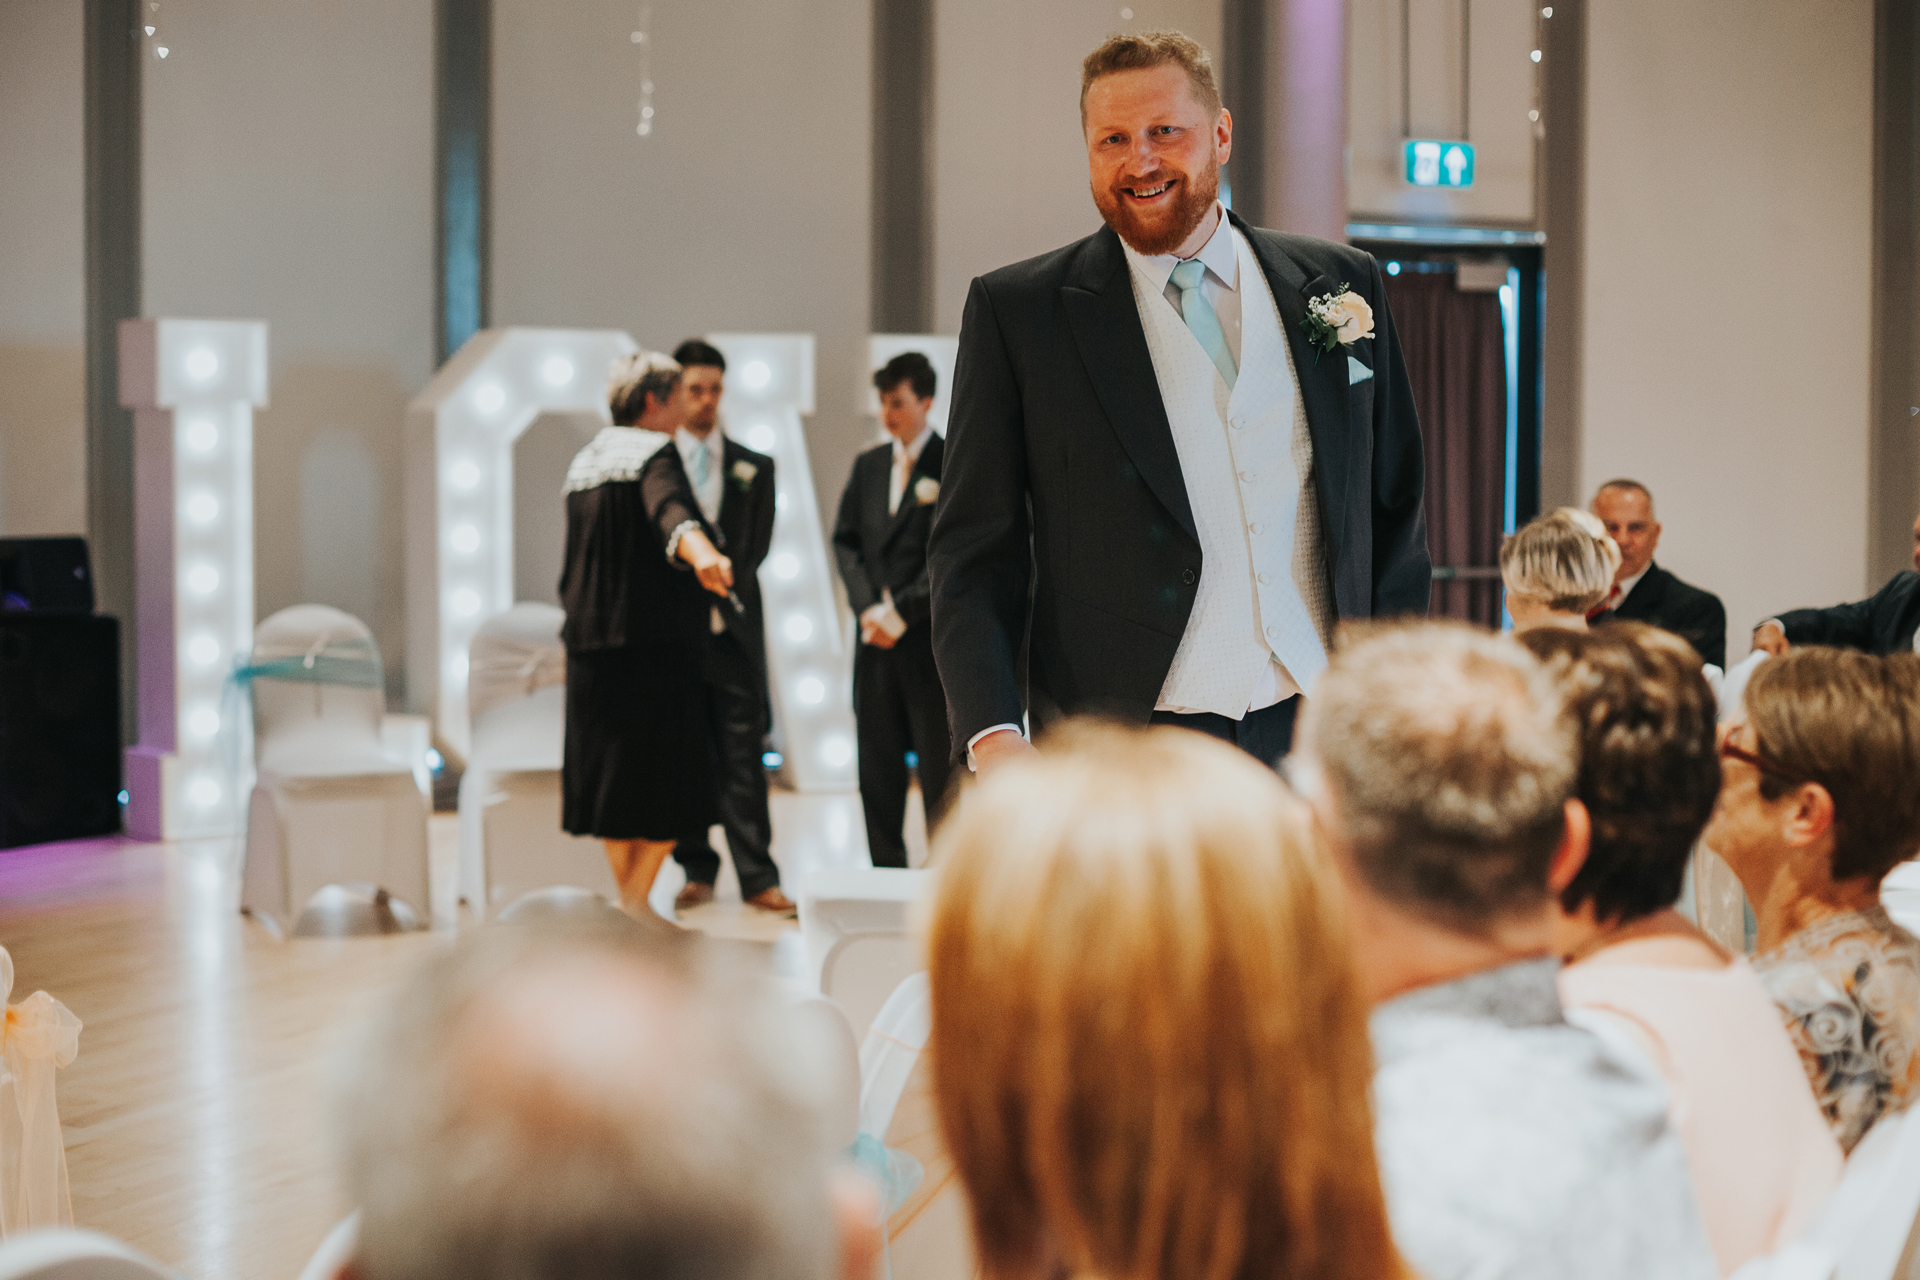 Groom looks on at guests smiling as he waits for his bride.